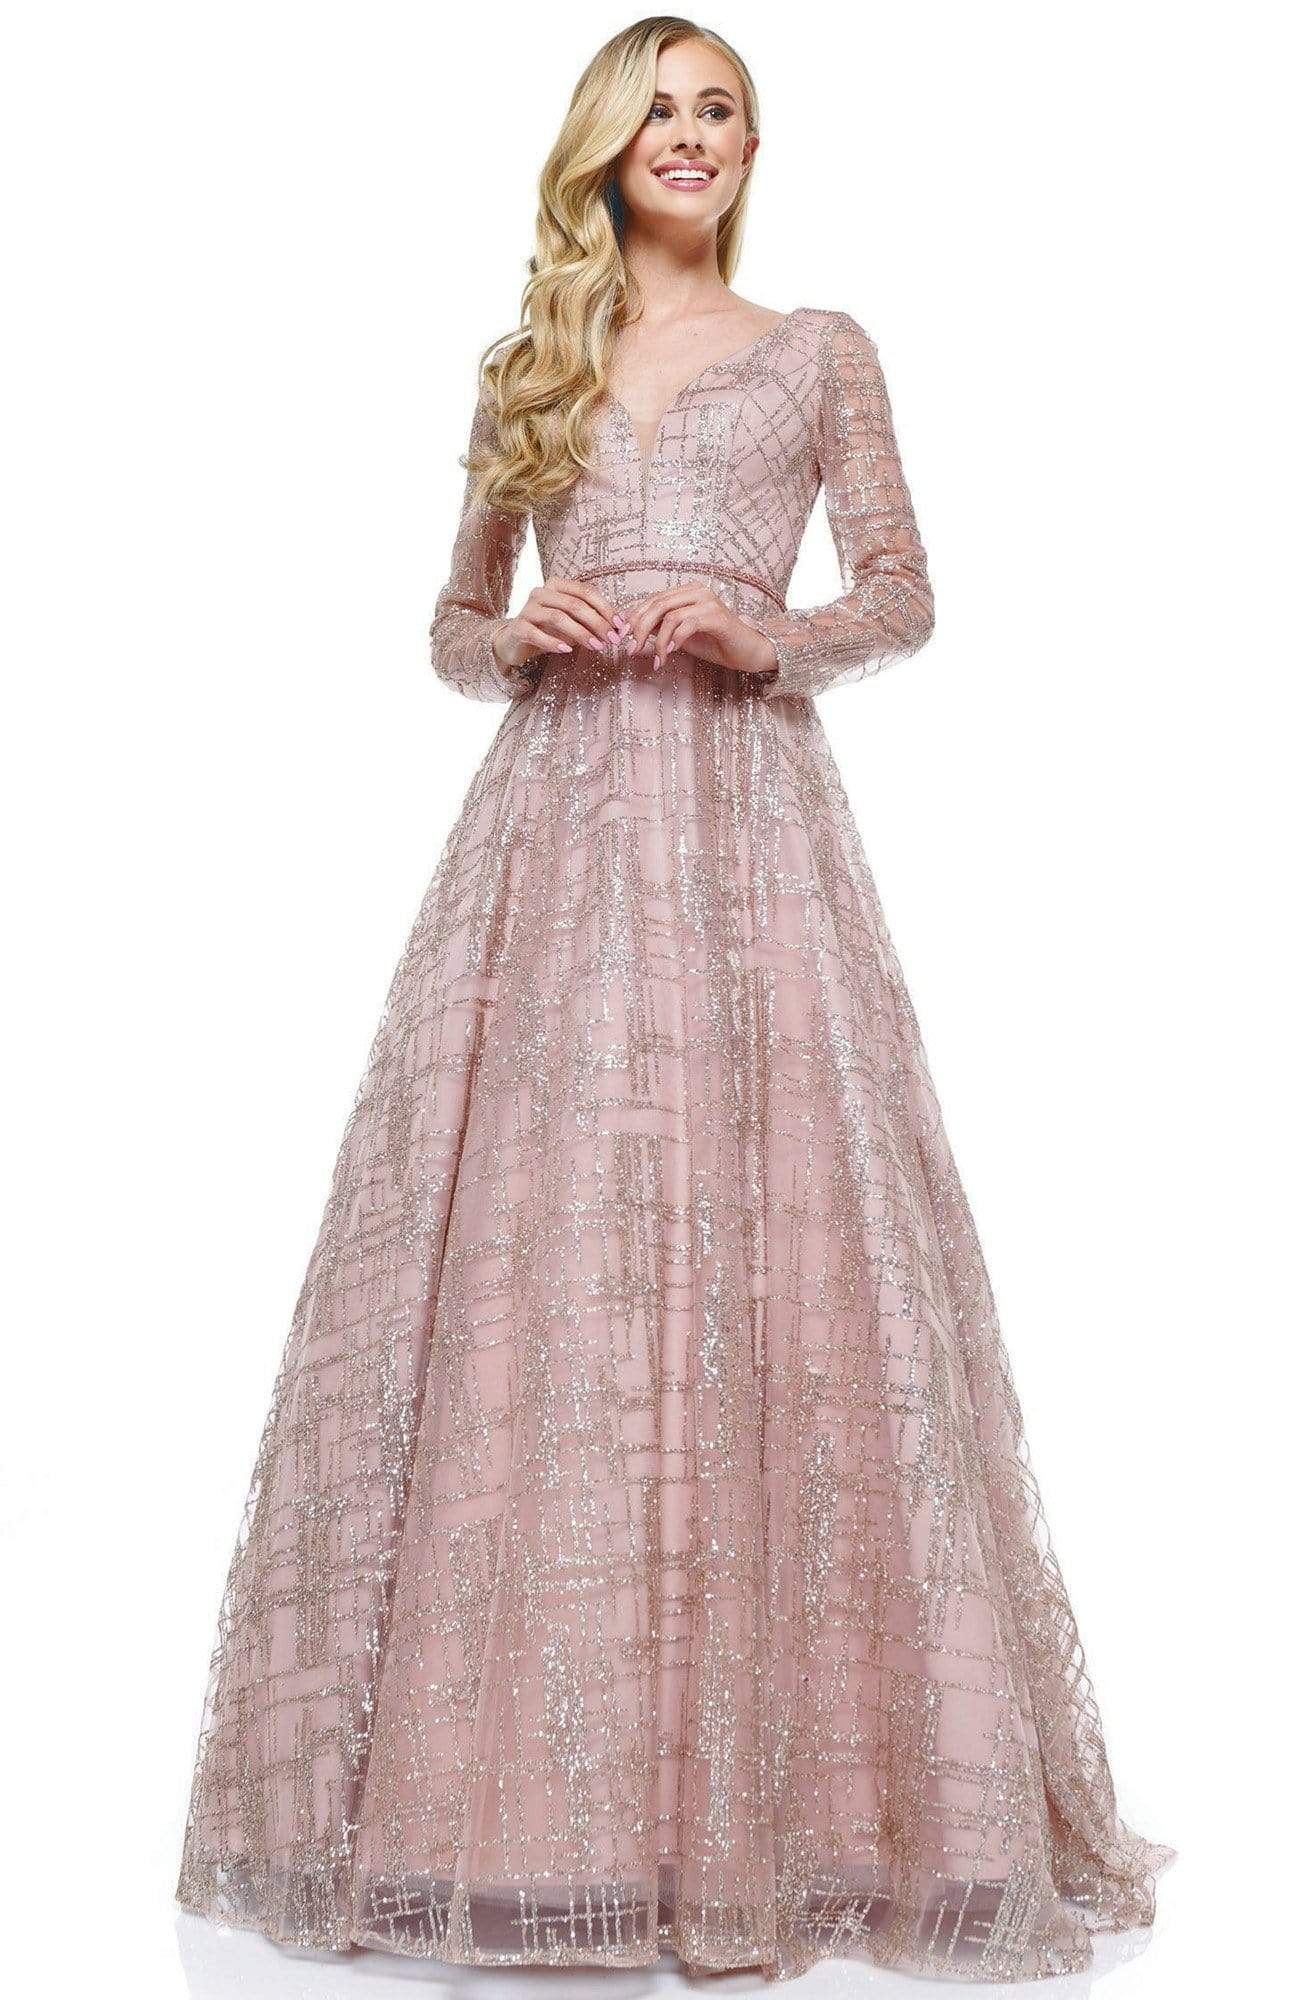 Glow Dress - G902 Beaded Long Sleeve Deep V-neck A-line Dress Prom Dresses 2 / Rose Gold